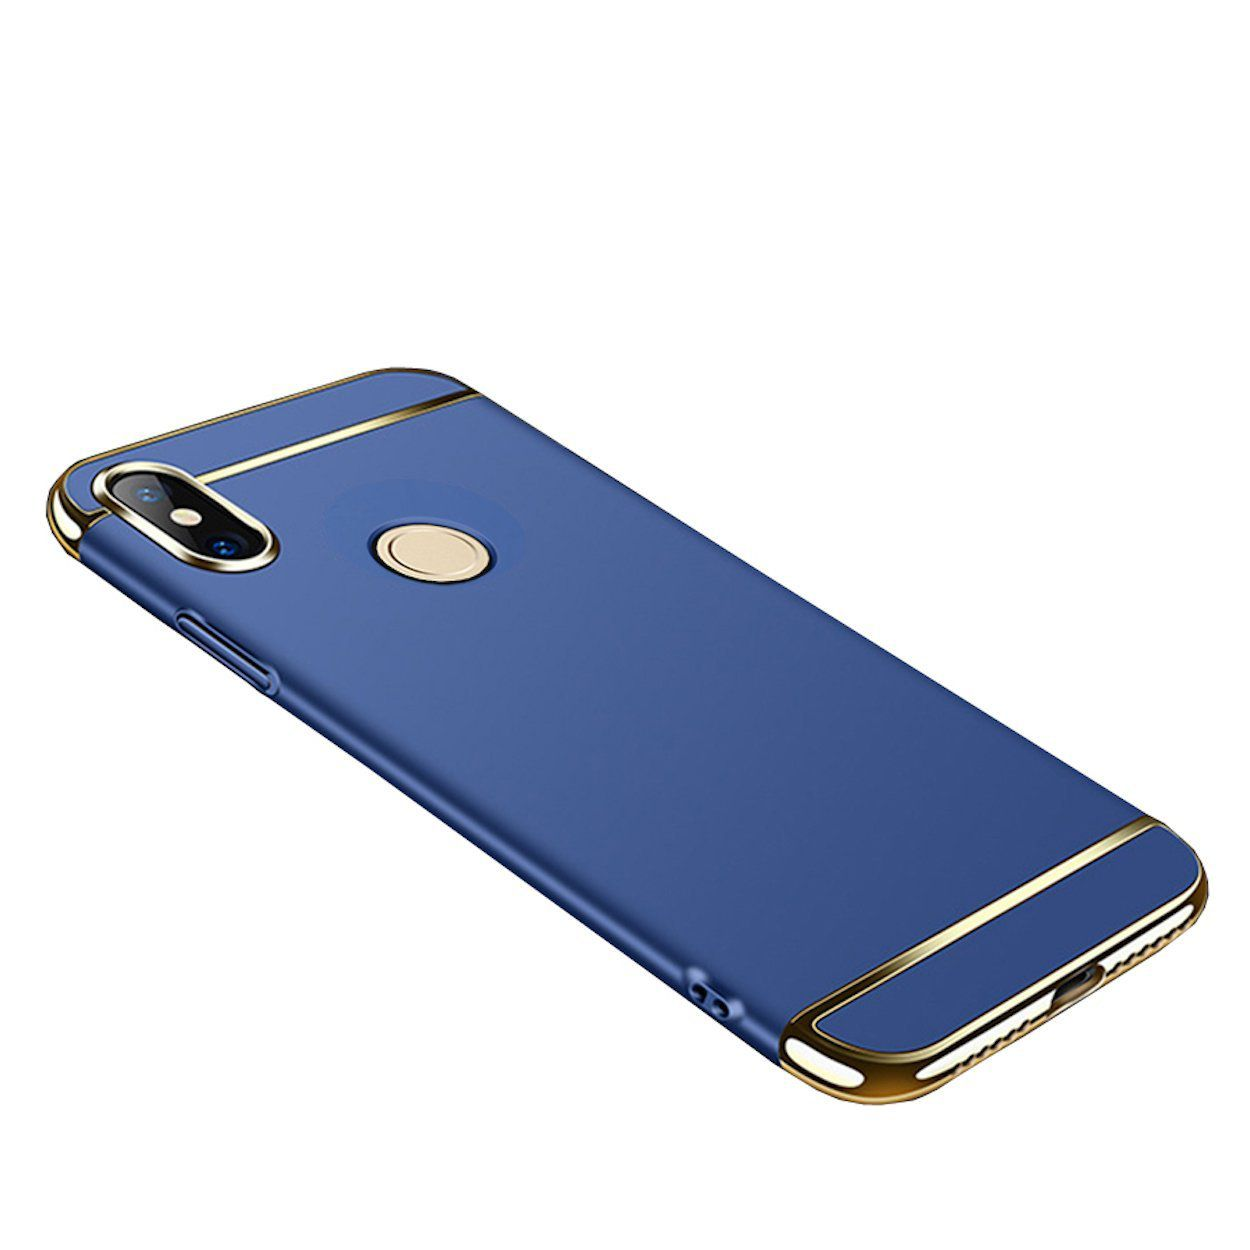 buy online f3f70 6c754 Xiaomi Redmi Note 5 Pro Hybrid Covers BM - Blue